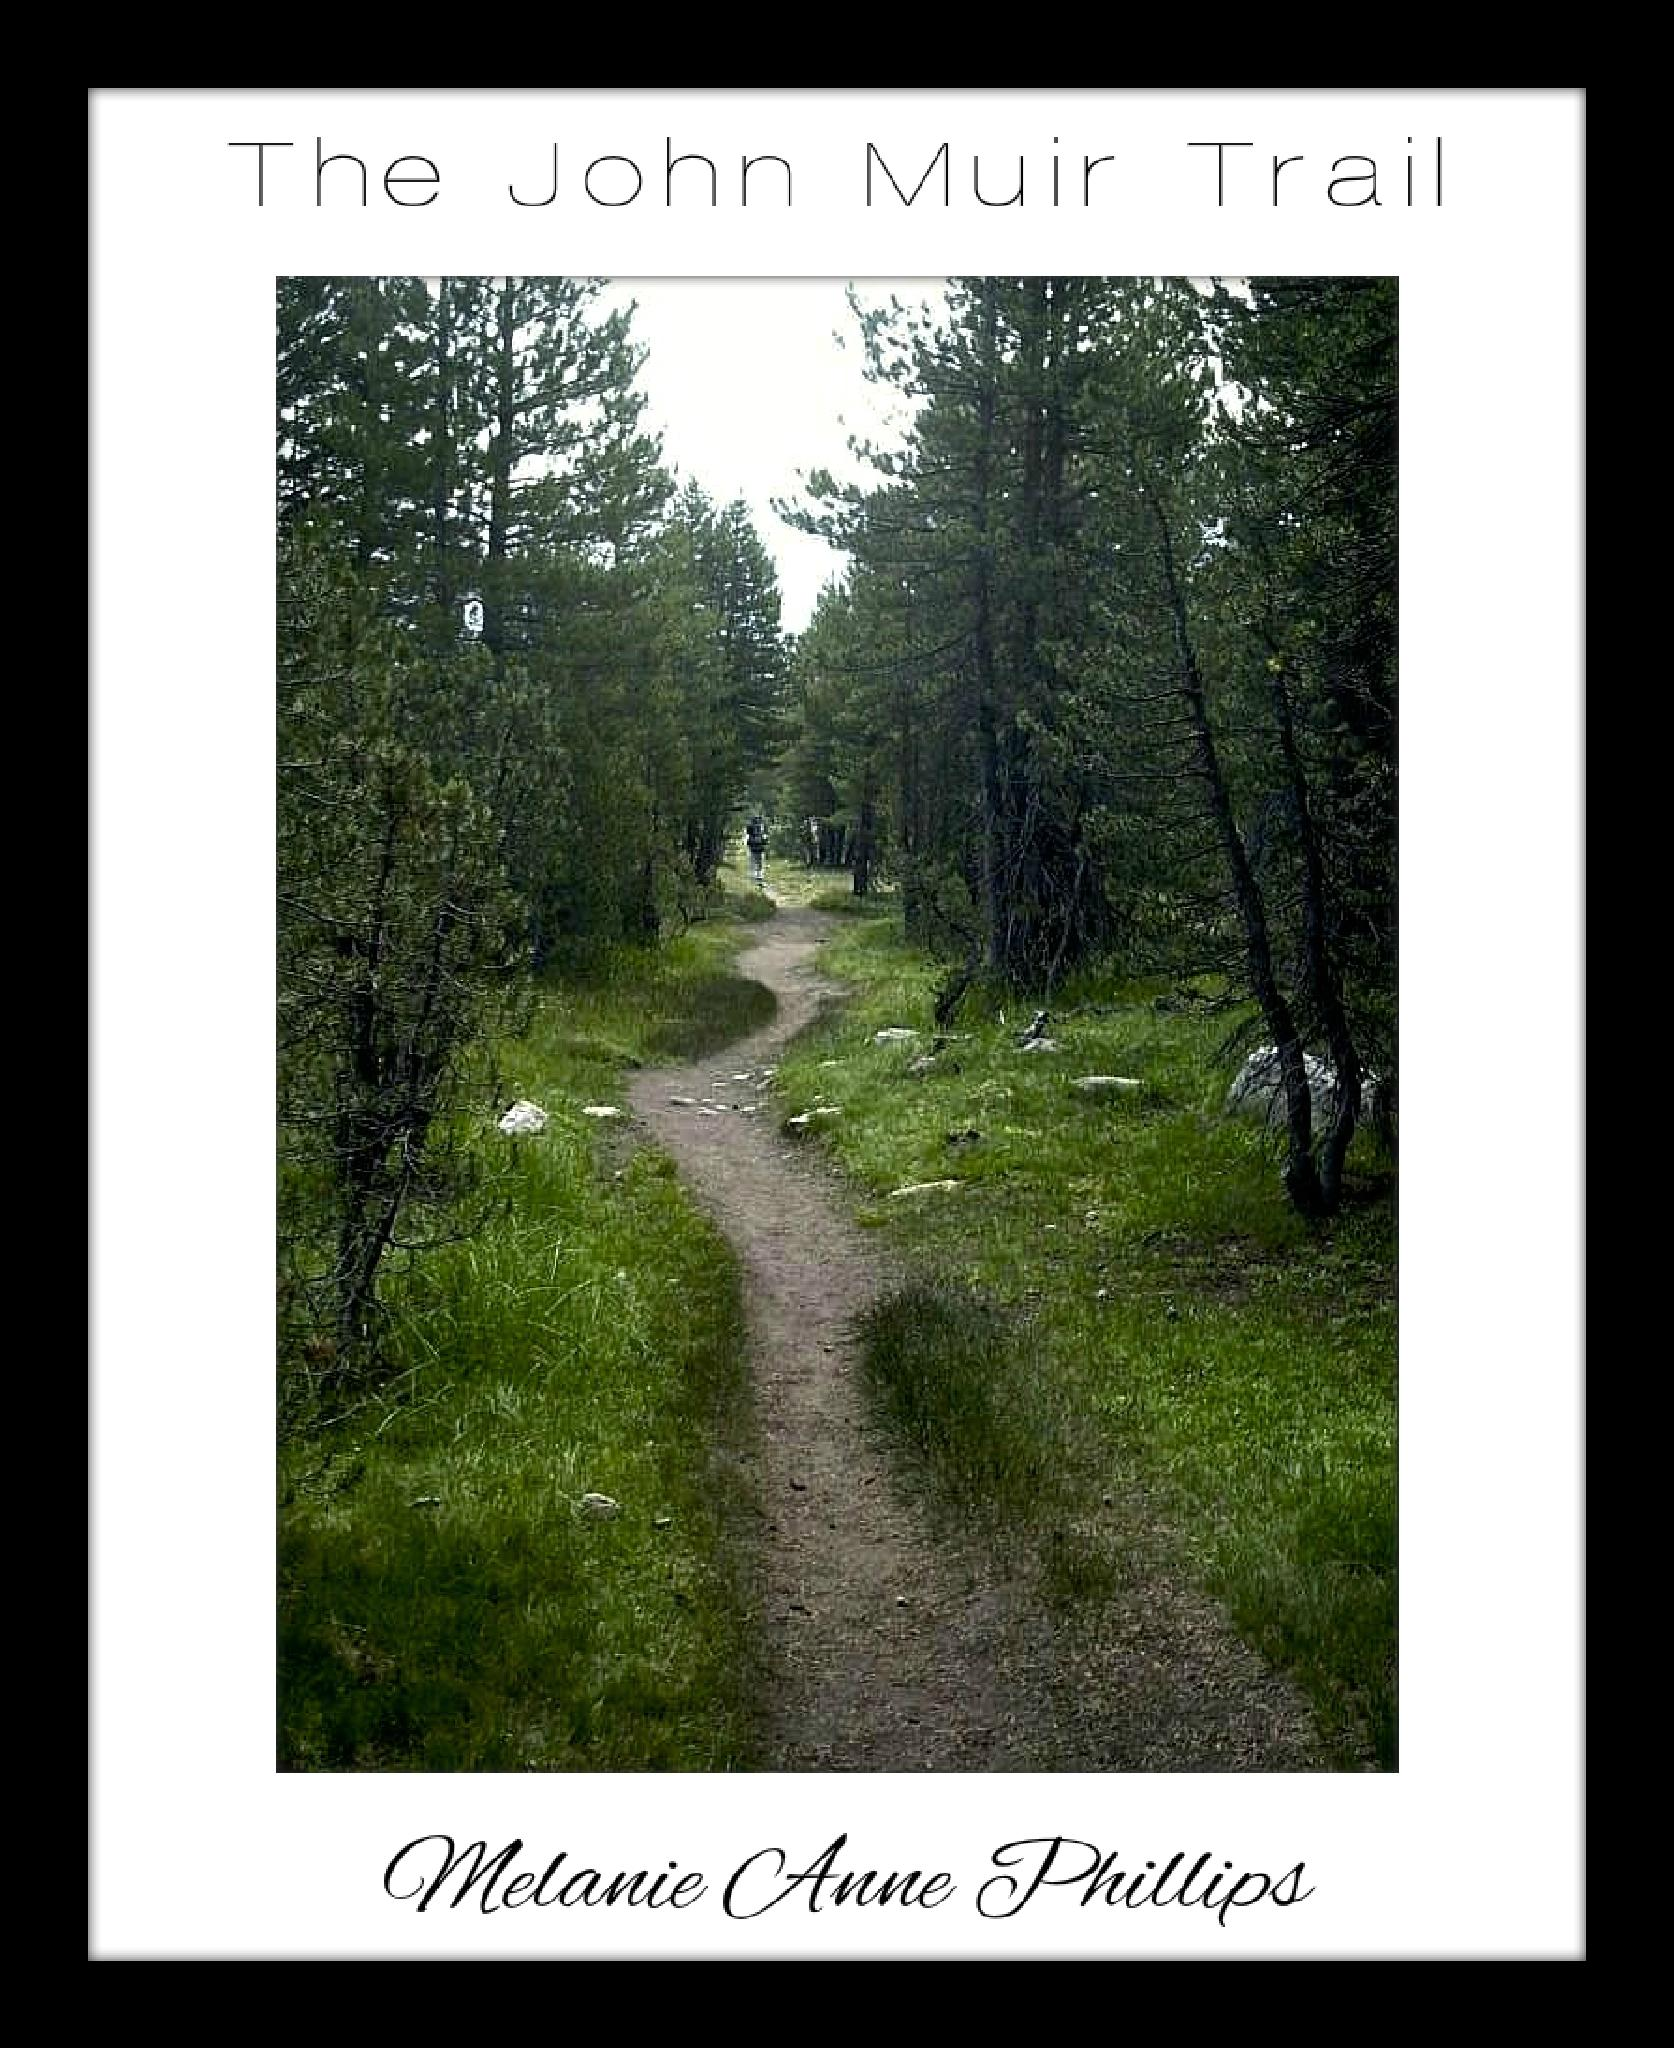 The John Muir Trail by MelanieAnnePhillips